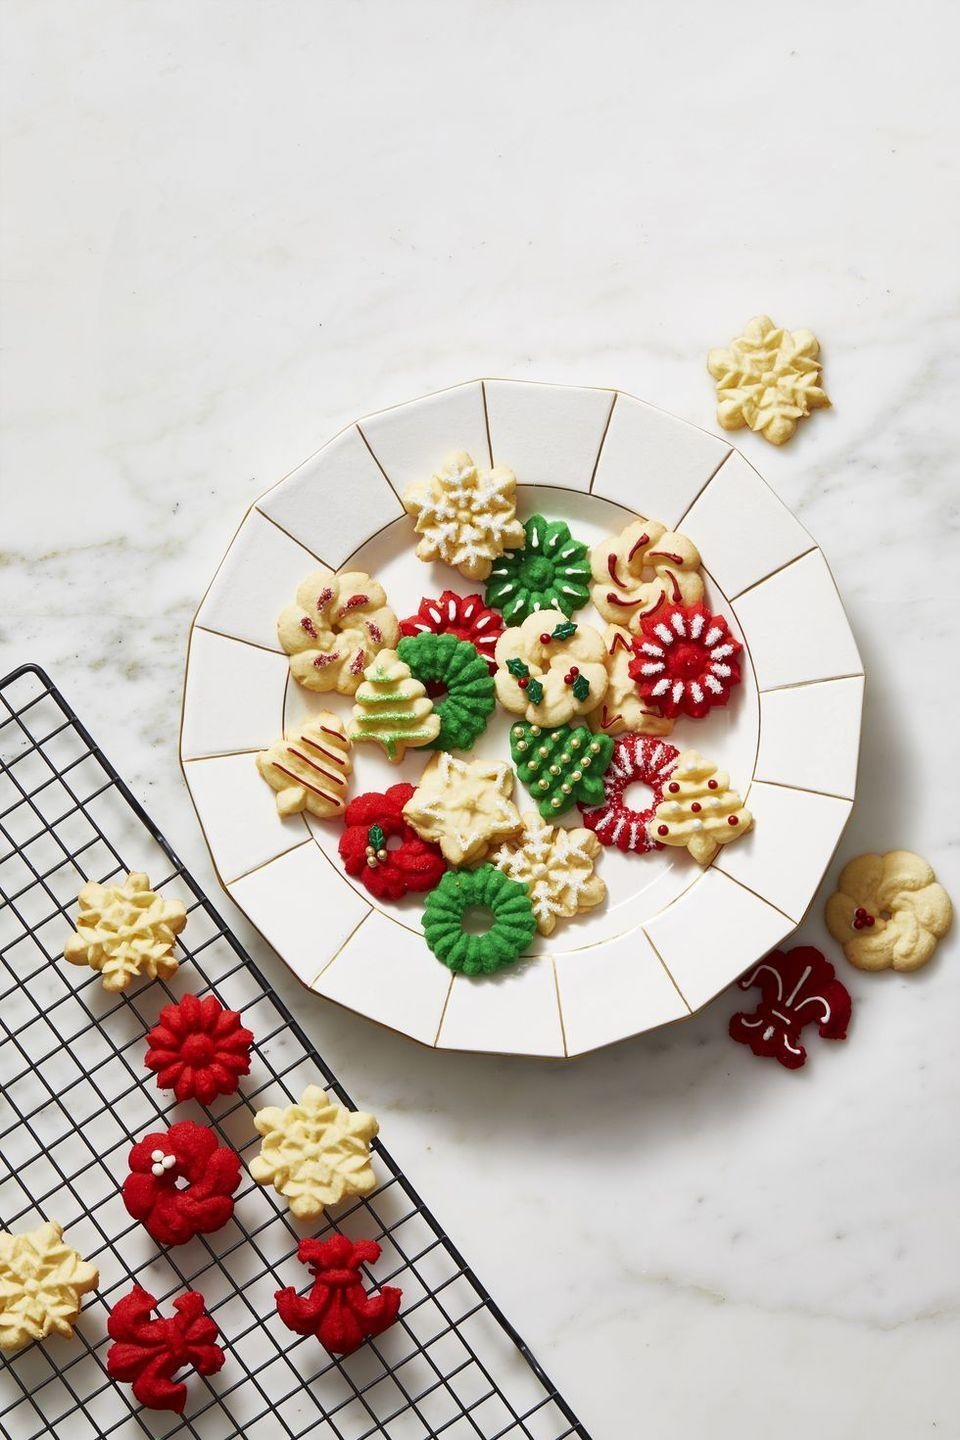 "<p>They may look store-bought, but with the help of a cookie press, these buttery treats are super simple to make at home.</p><p><em><a href=""https://www.goodhousekeeping.com/food-recipes/a11212/spritz-cookies-recipe-ghk1211/"" rel=""nofollow noopener"" target=""_blank"" data-ylk=""slk:Get the recipe for Holiday Spritz Cookies »"" class=""link rapid-noclick-resp"">Get the recipe for Holiday Spritz Cookies »</a></em></p><p><a class=""link rapid-noclick-resp"" href=""https://www.amazon.com/OXO-Grips-Cookie-Stainless-Storage/dp/B00ABH0PYI?linkCode=ogi&tag=syn-yahoo-20&ascsubtag=%5Bartid%7C10055.g.34730020%5Bsrc%7Cyahoo-us"" rel=""nofollow noopener"" target=""_blank"" data-ylk=""slk:SHOP NOW"">SHOP NOW</a></p>"